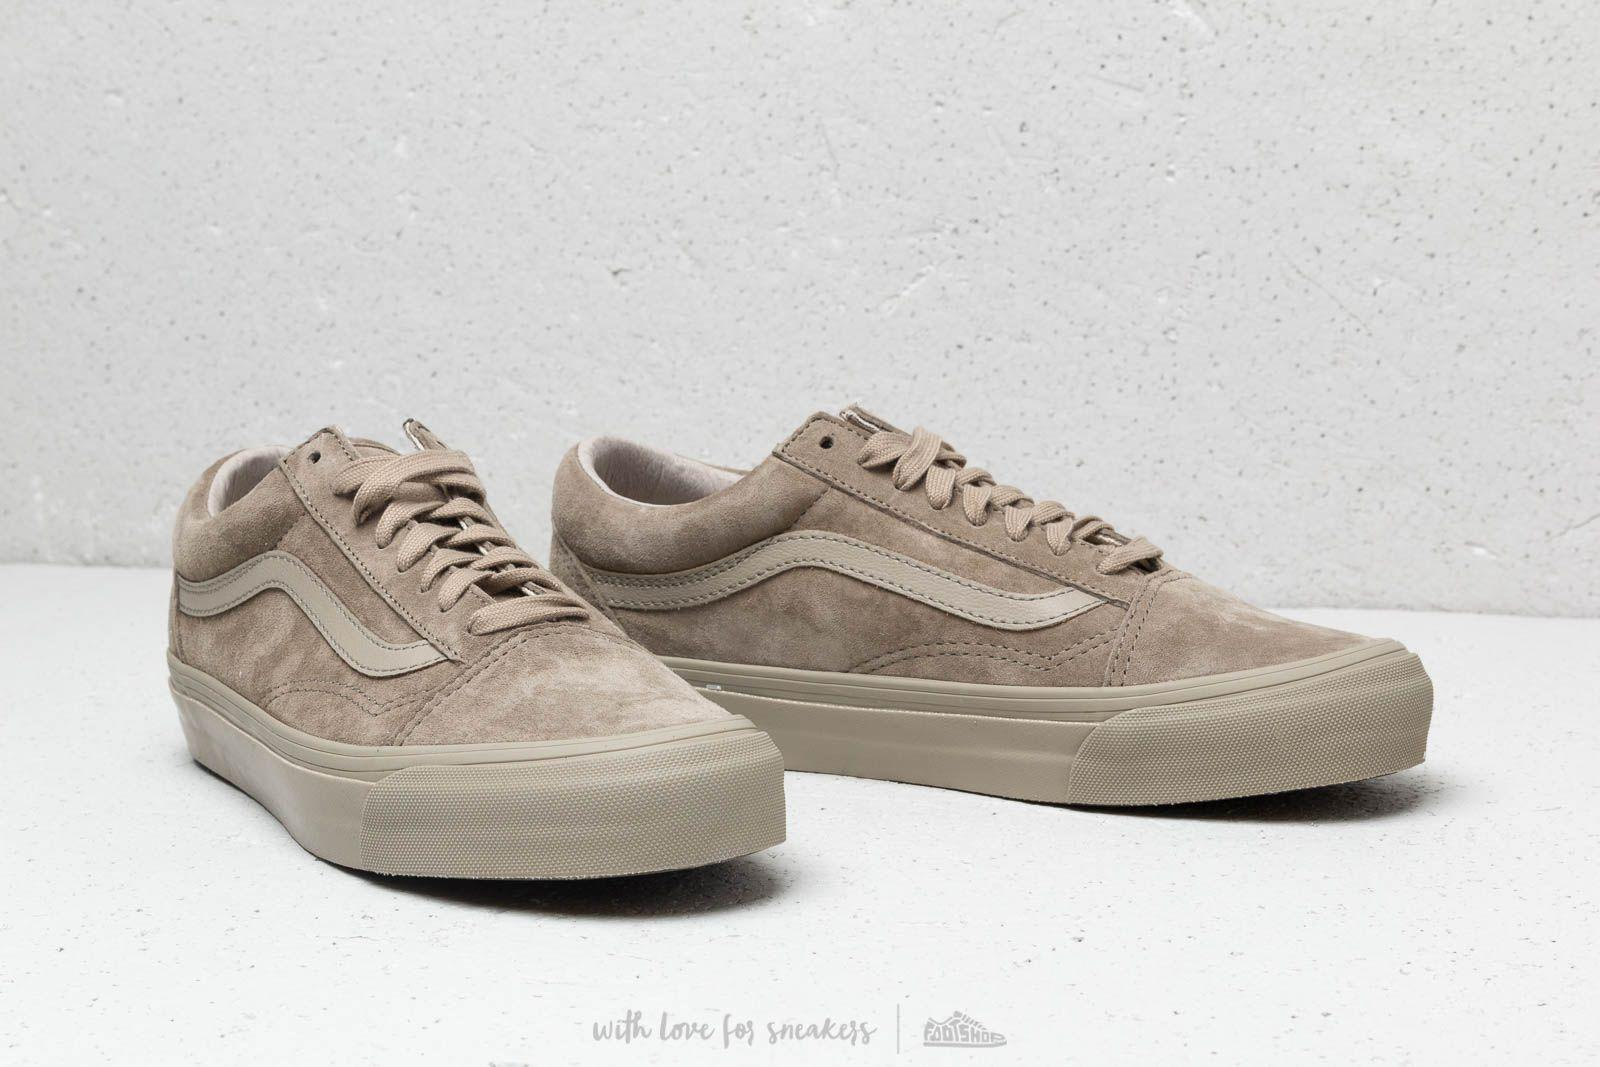 ebf116da38ae70 Lyst - Vans Og Old Skool Lx (leather  Suede) Plaze Taupe for Men